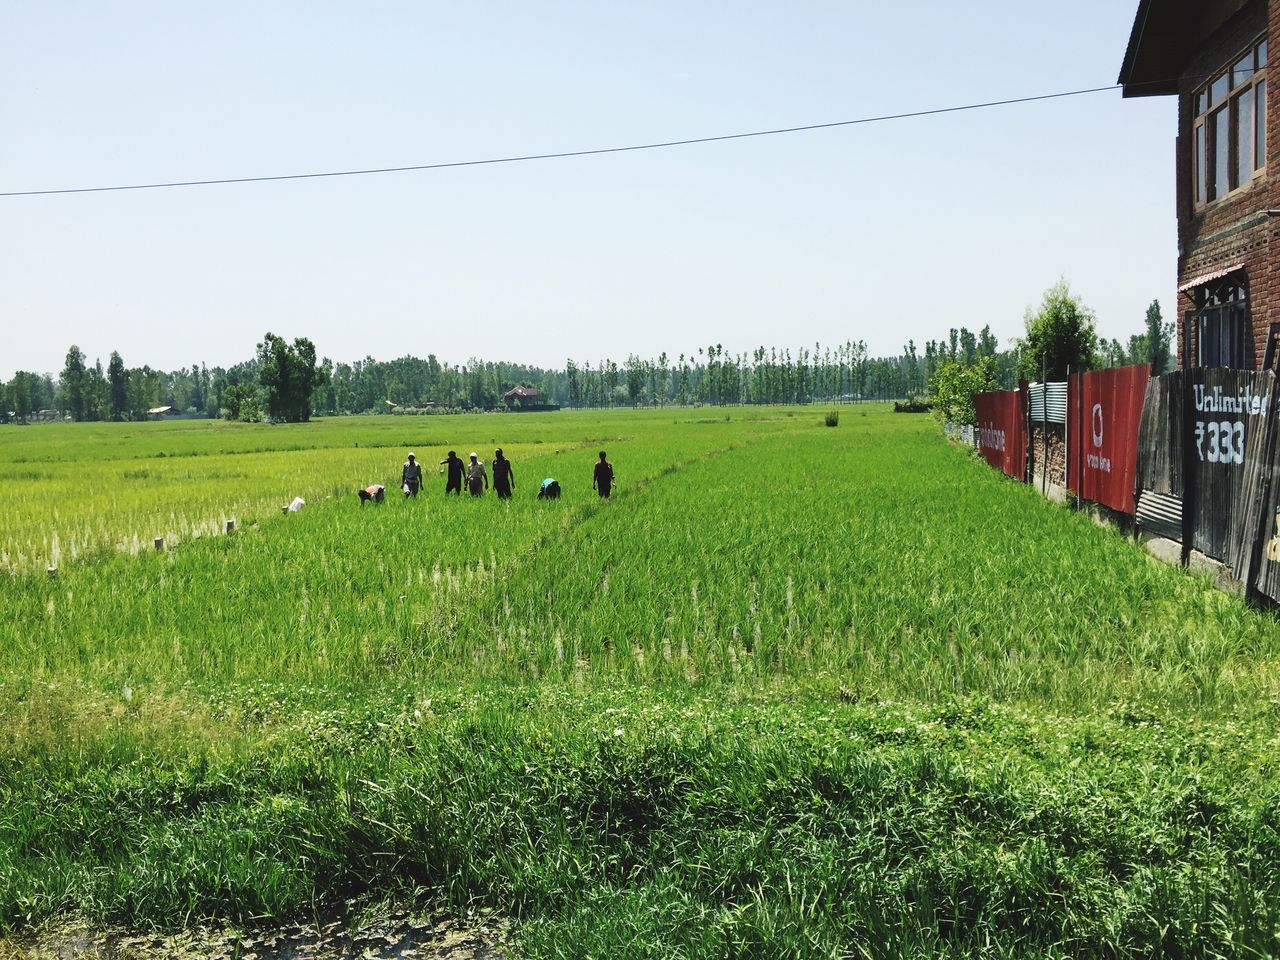 Farmers Field Miles Away Outdoors Sky Riceplantation House Wires Summer Day People Landscape Eye4photography  ShotOniPhone6 Kashmir , India Kashmirdiaries Kashmirphotographers The Great Outdoors - 2017 EyeEm Awards